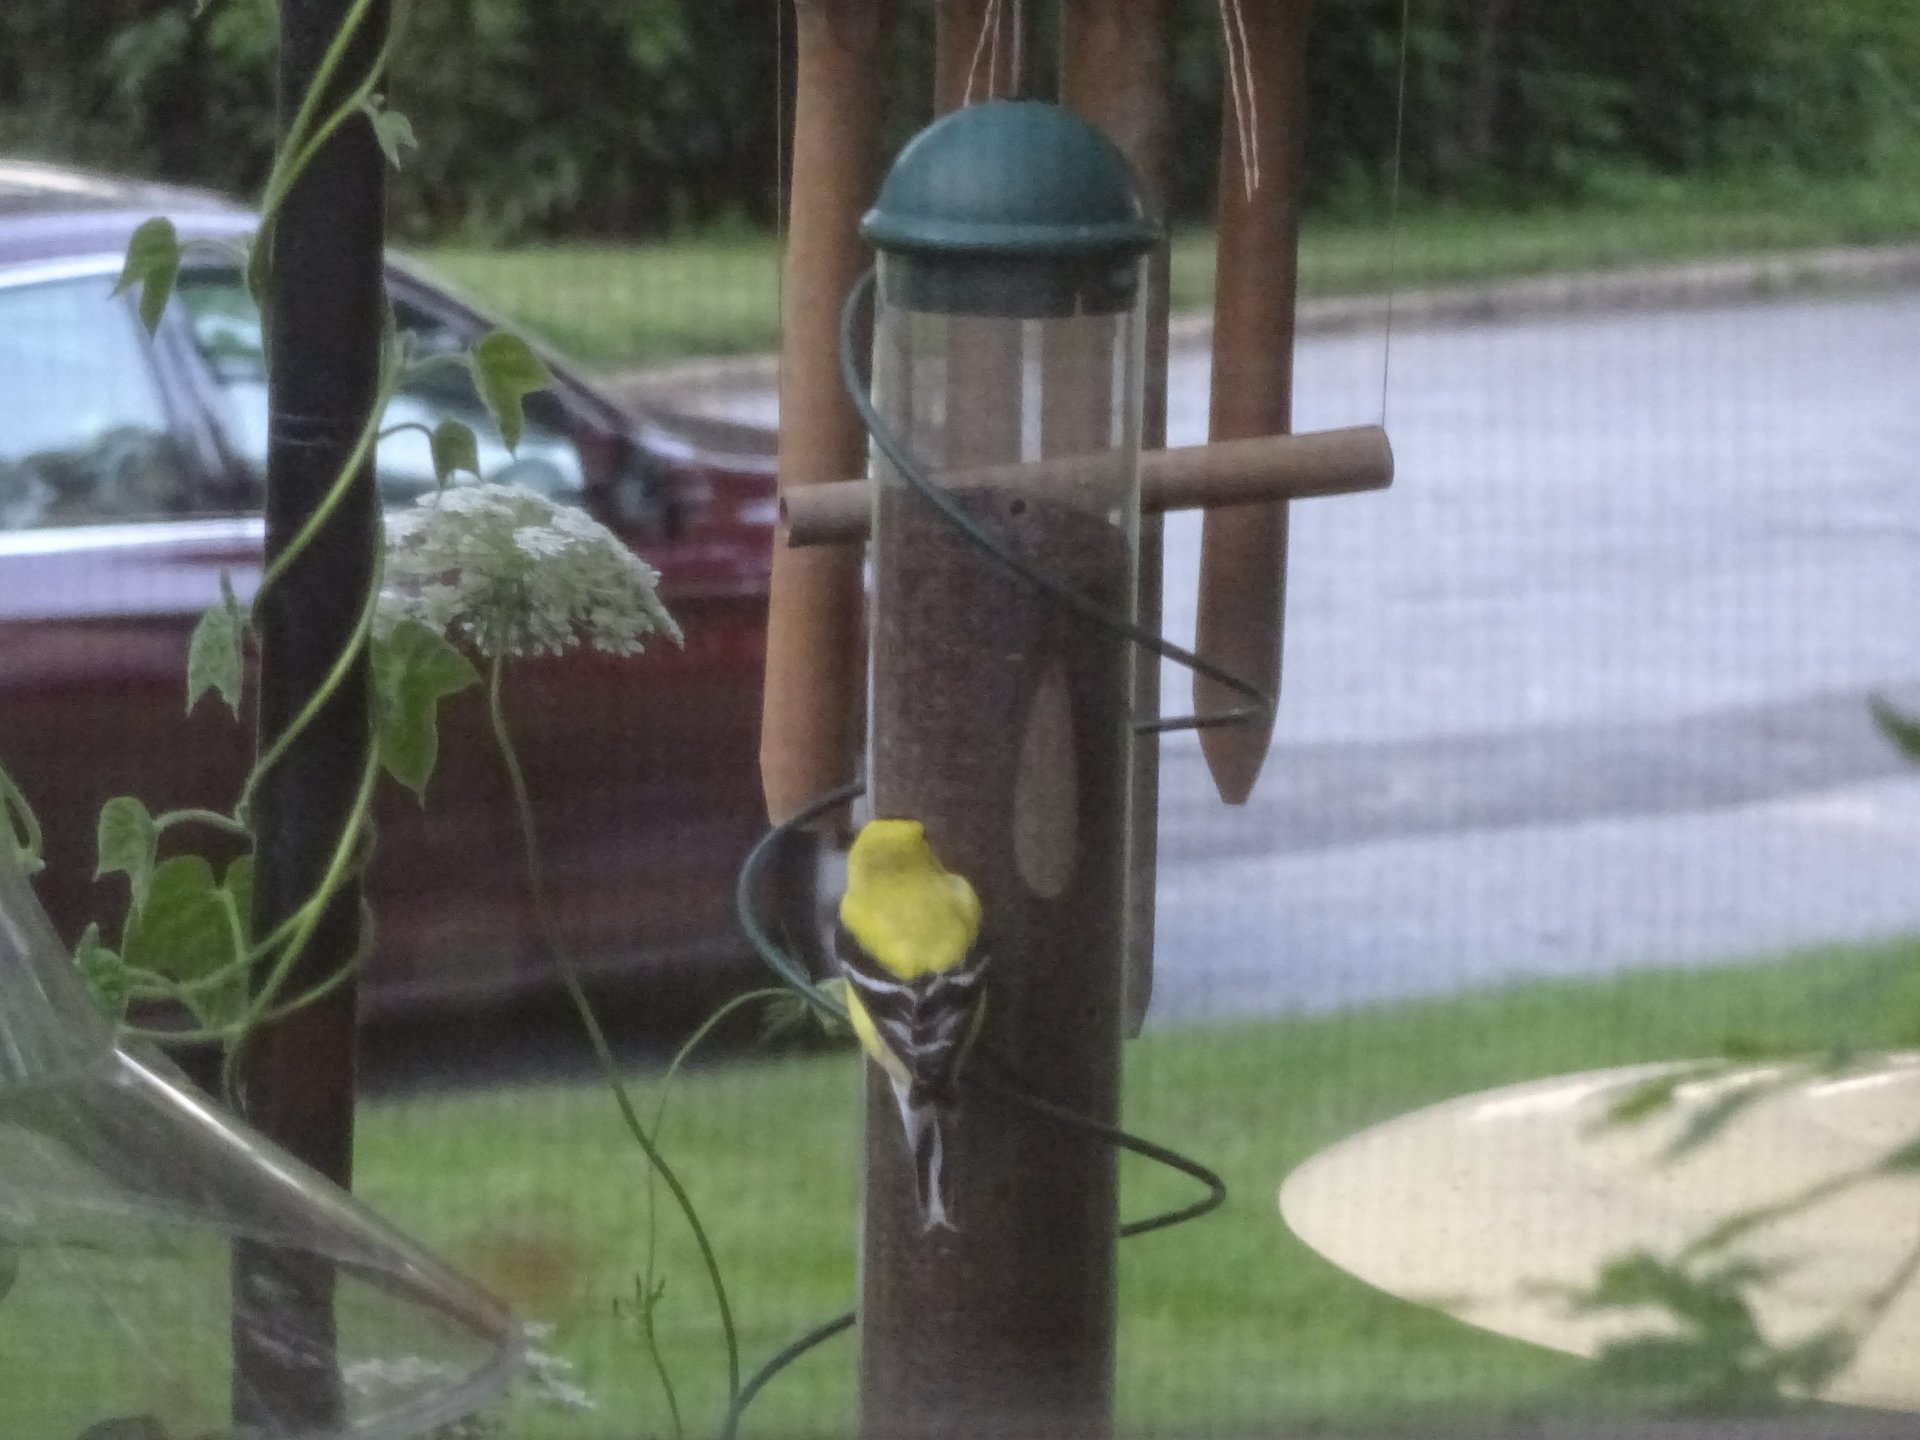 plastic feeder finch green amazon com inch garden port audubon woodlink feeders seed outdoor dp tube